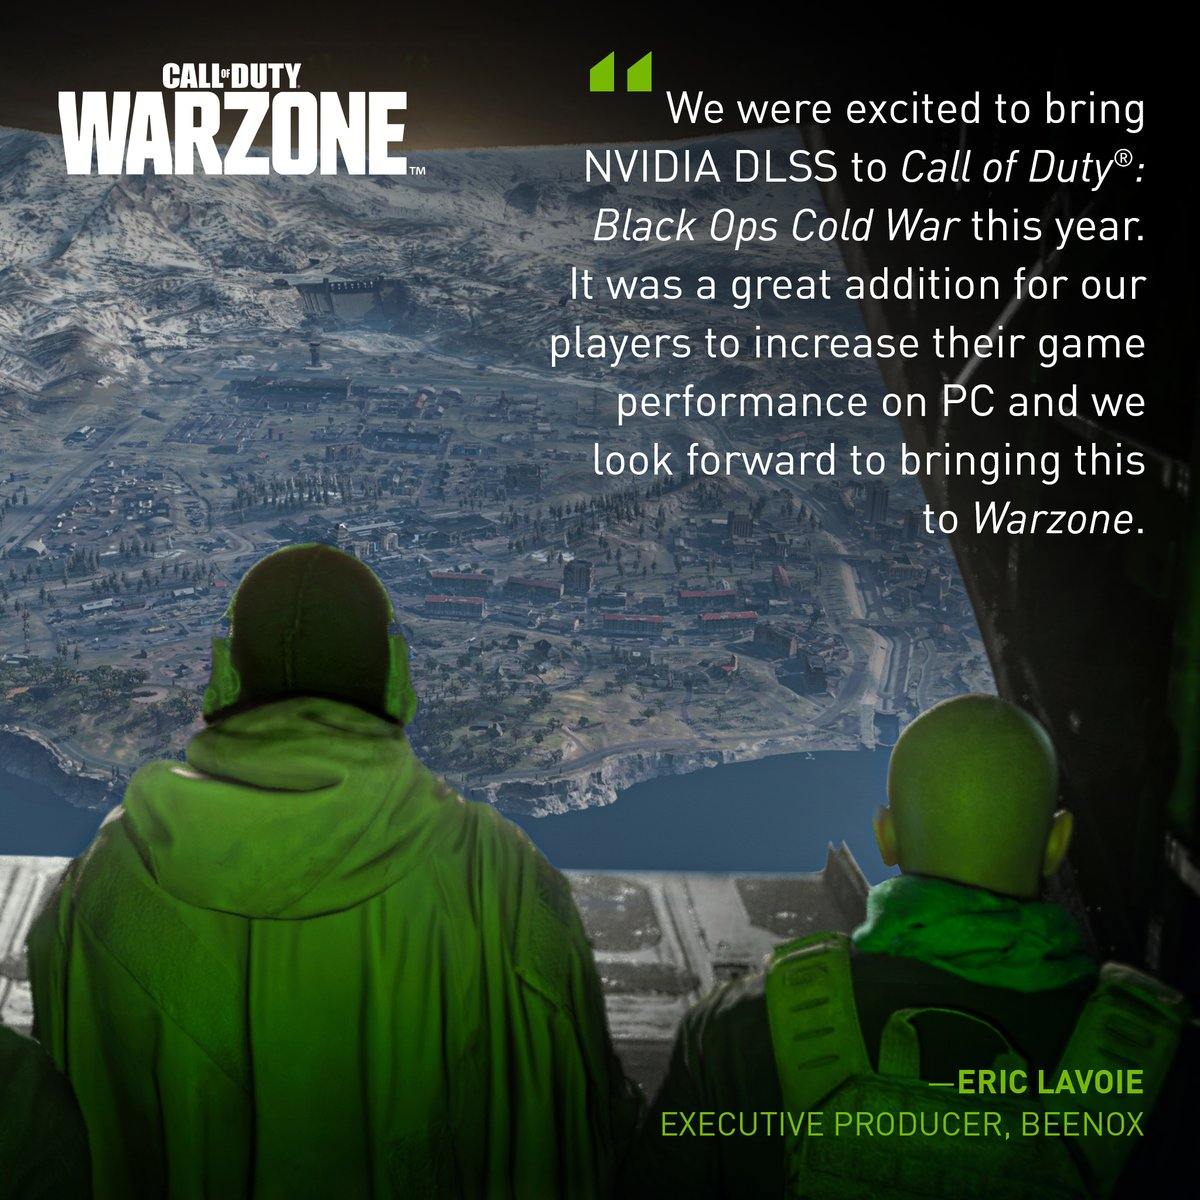 Powered by AI and NVIDIA GeForce RTX GPUs, one of the world's biggest games is about to get even faster.   NVIDIA DLSS is coming to Call of Duty: #Warzone, taking visual fidelity to a whole new level.  Learn more 👉